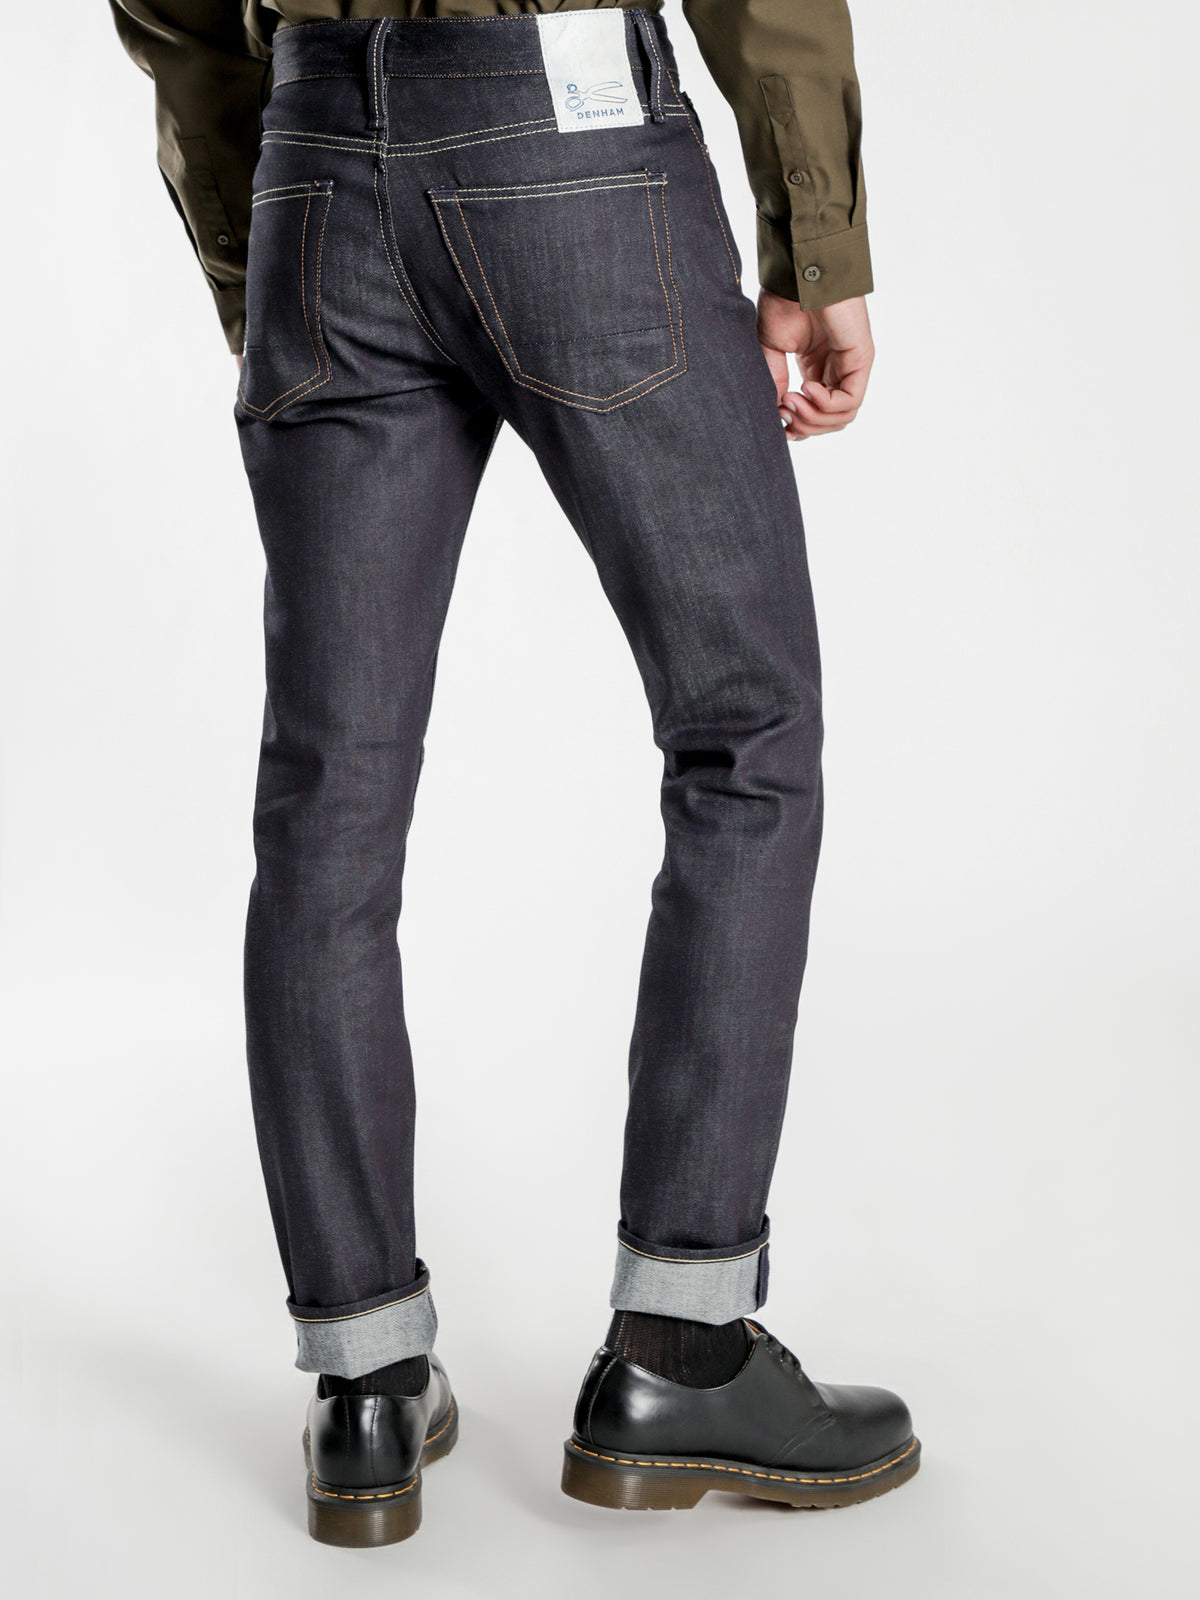 Bolt Vcors Skinny Jeans in Blue Wash Denim